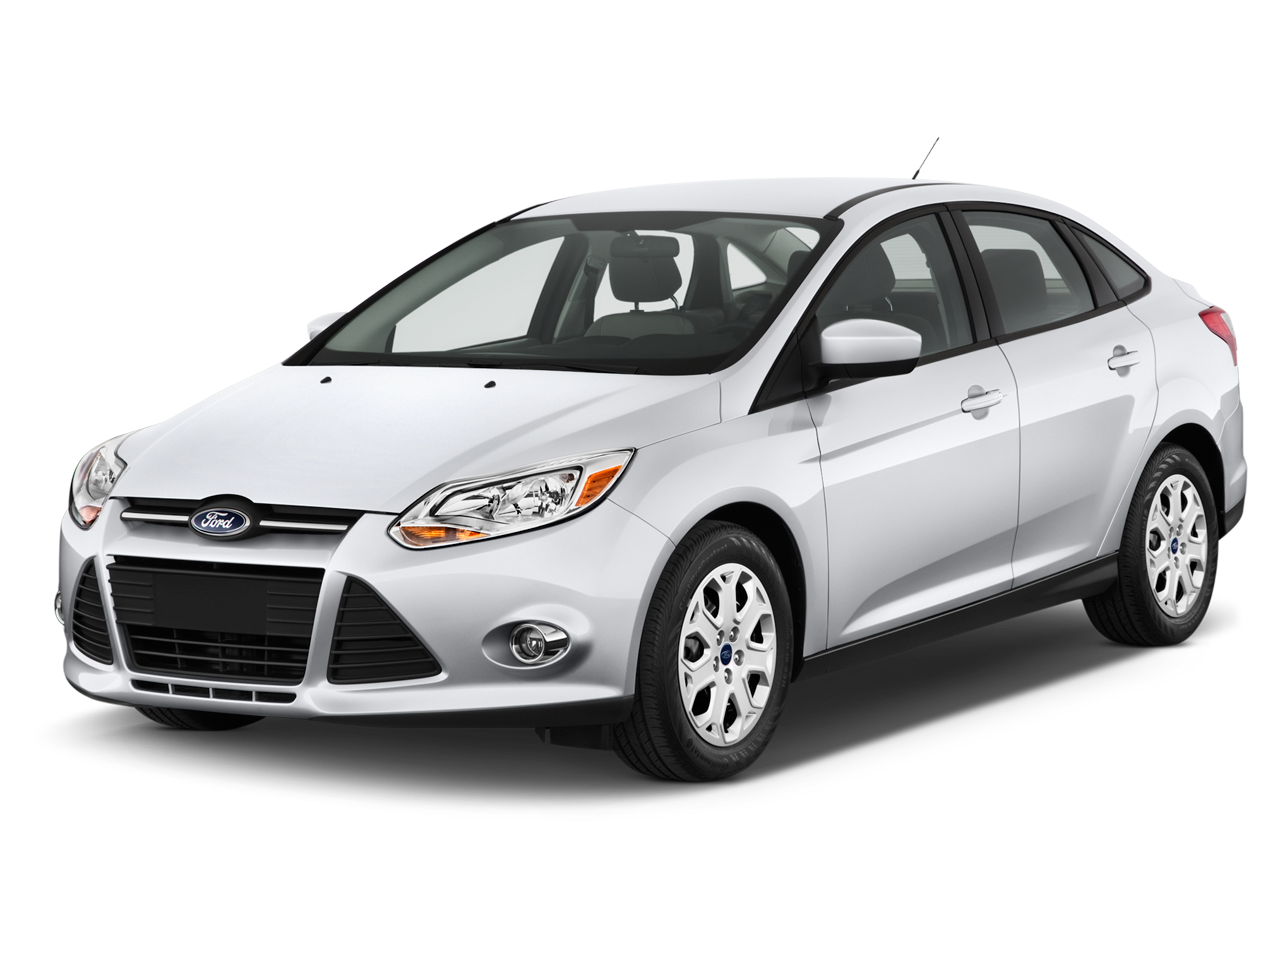 Ford Focus (or similar)